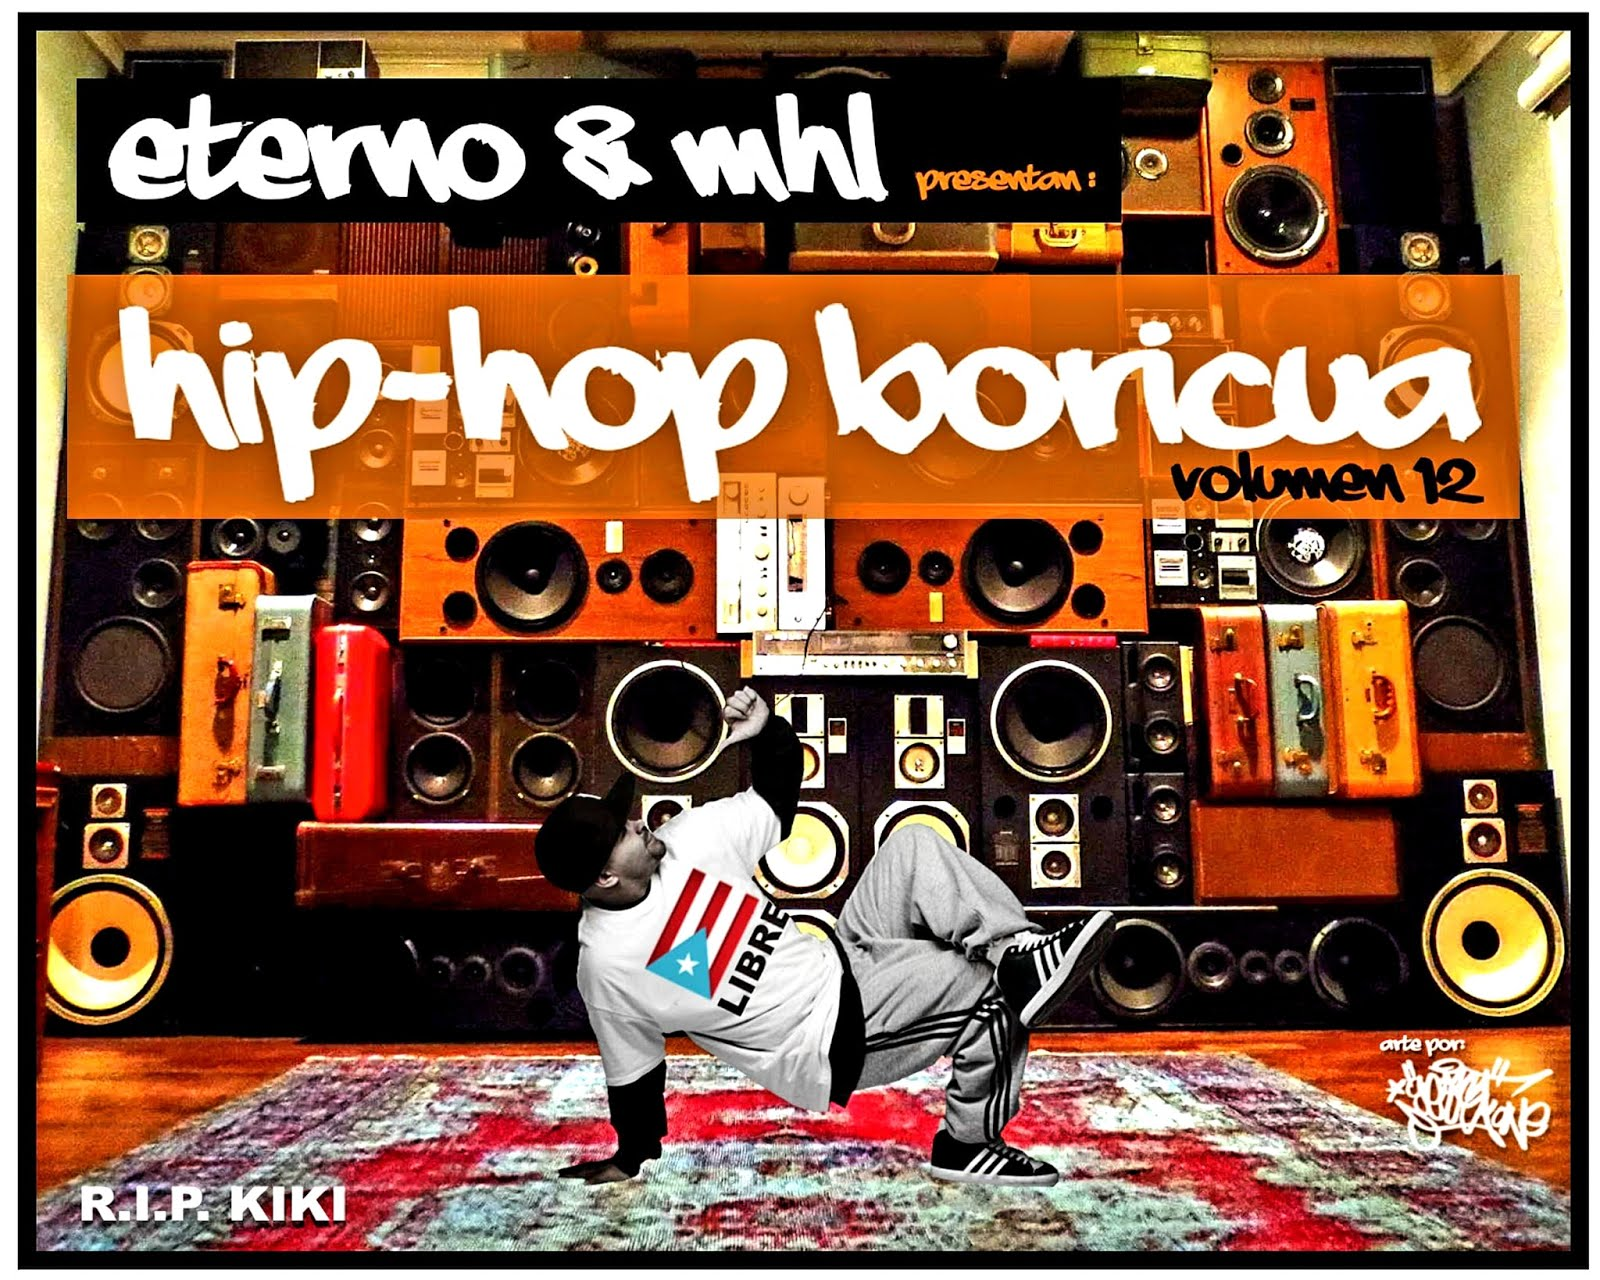 Hiphop Boricua Vol.12